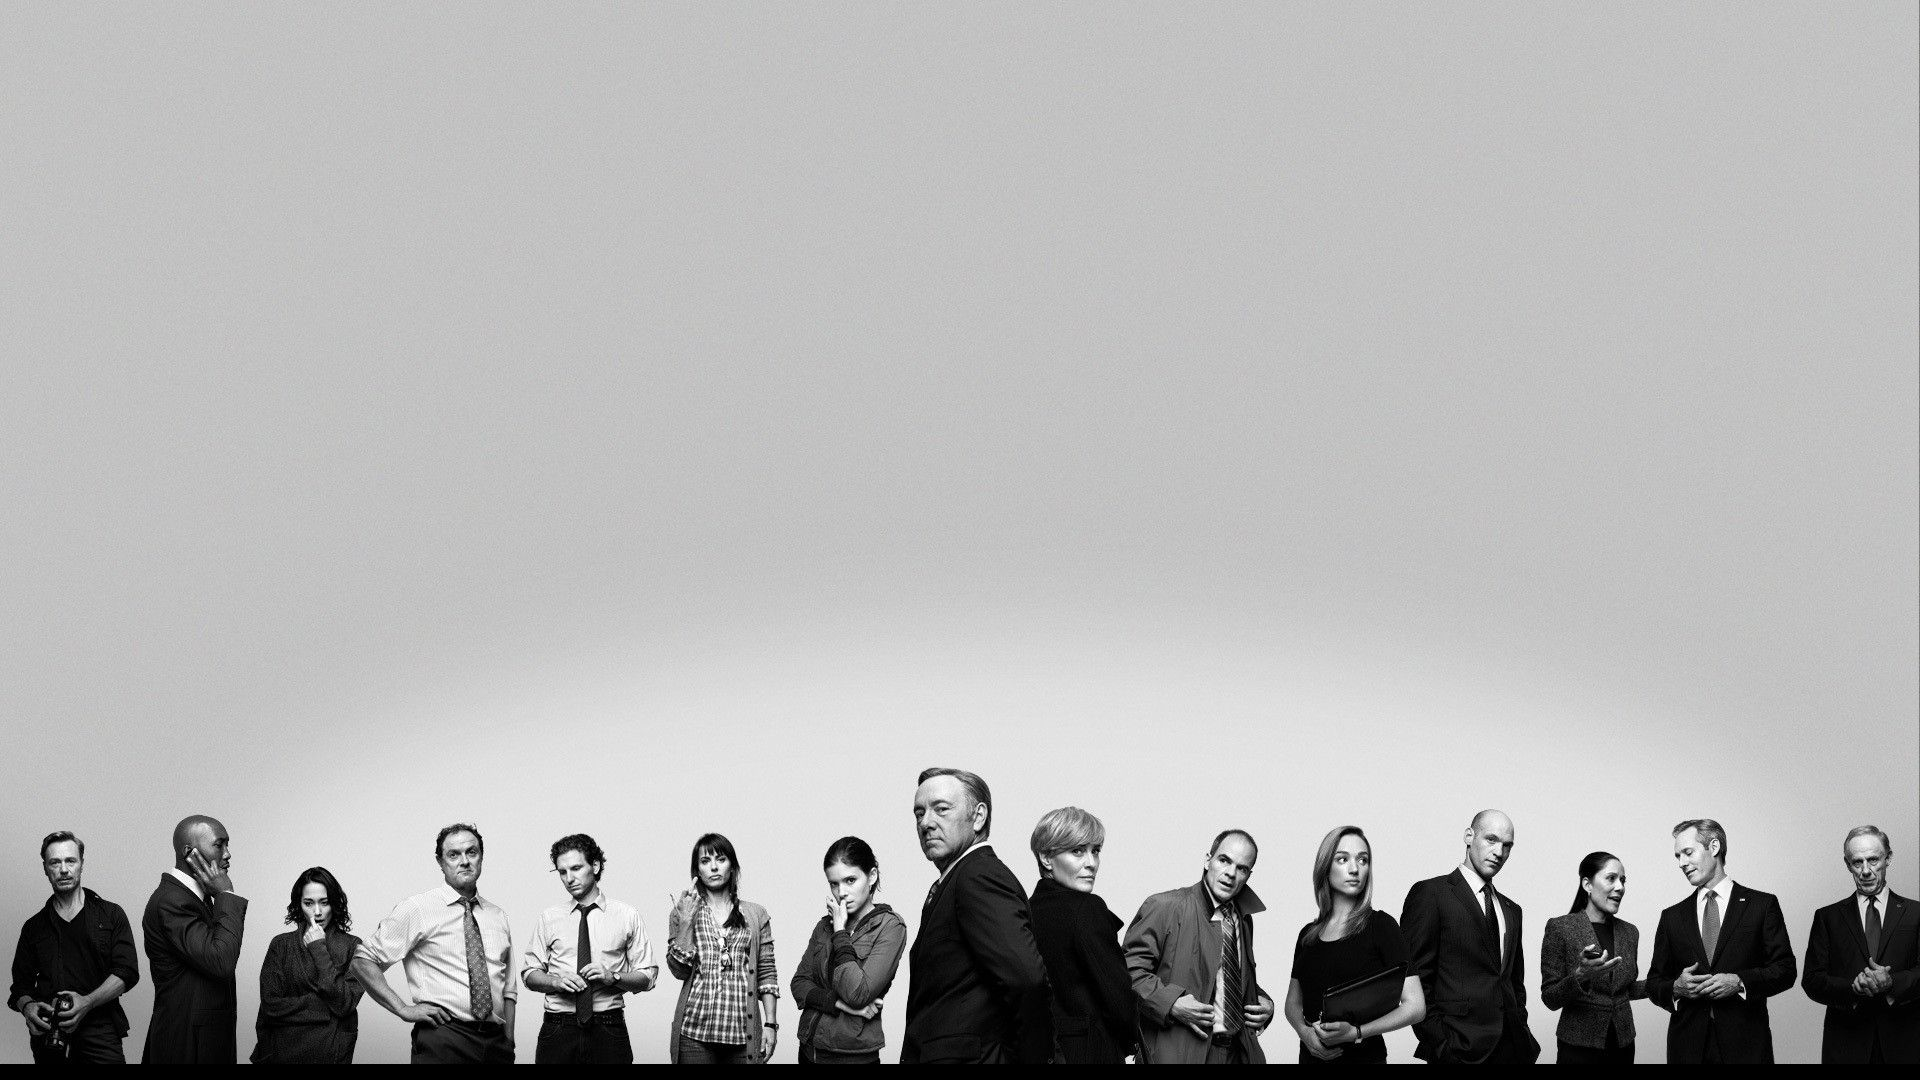 House Of Cards House Of Cards House Of Cards Seasons House Of Cards Cast